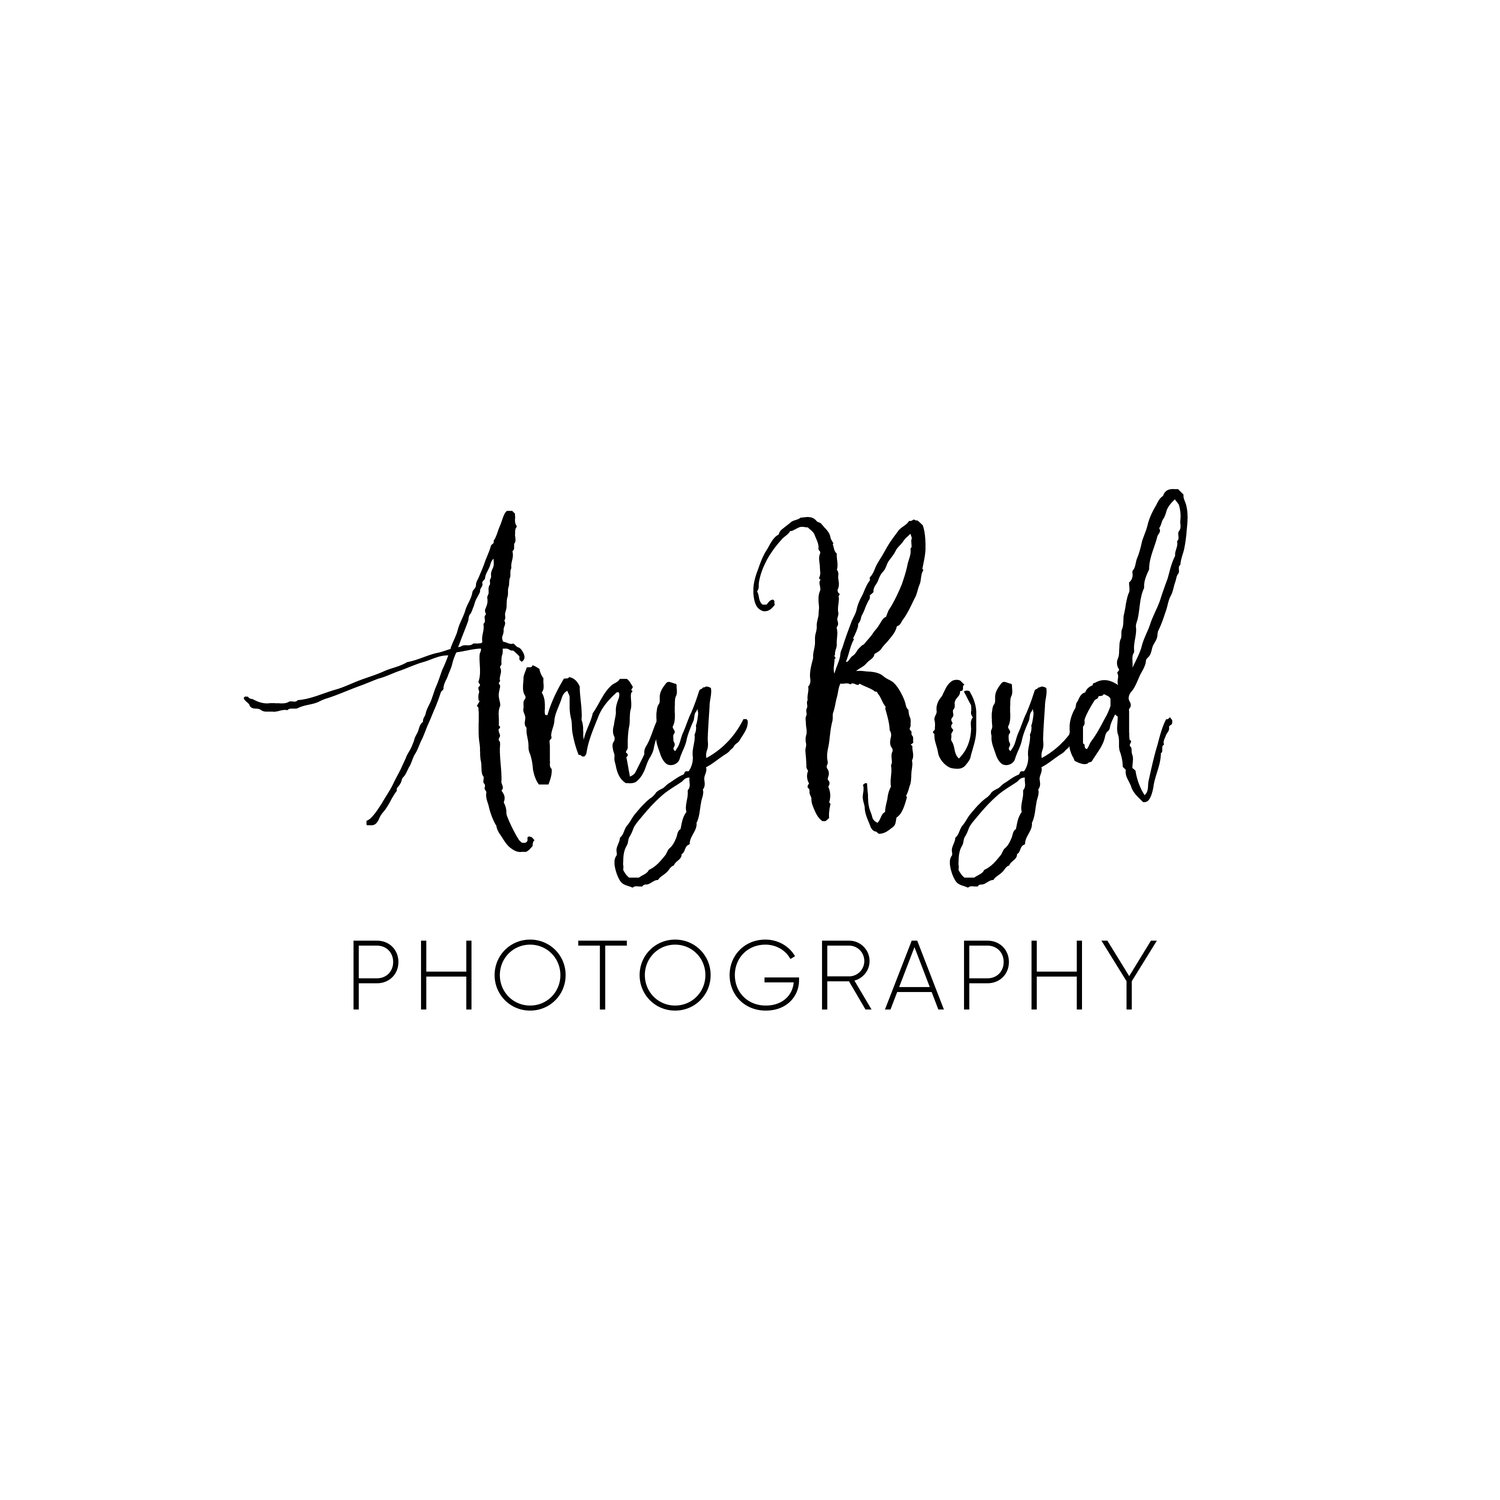 Amy Boyd Photography